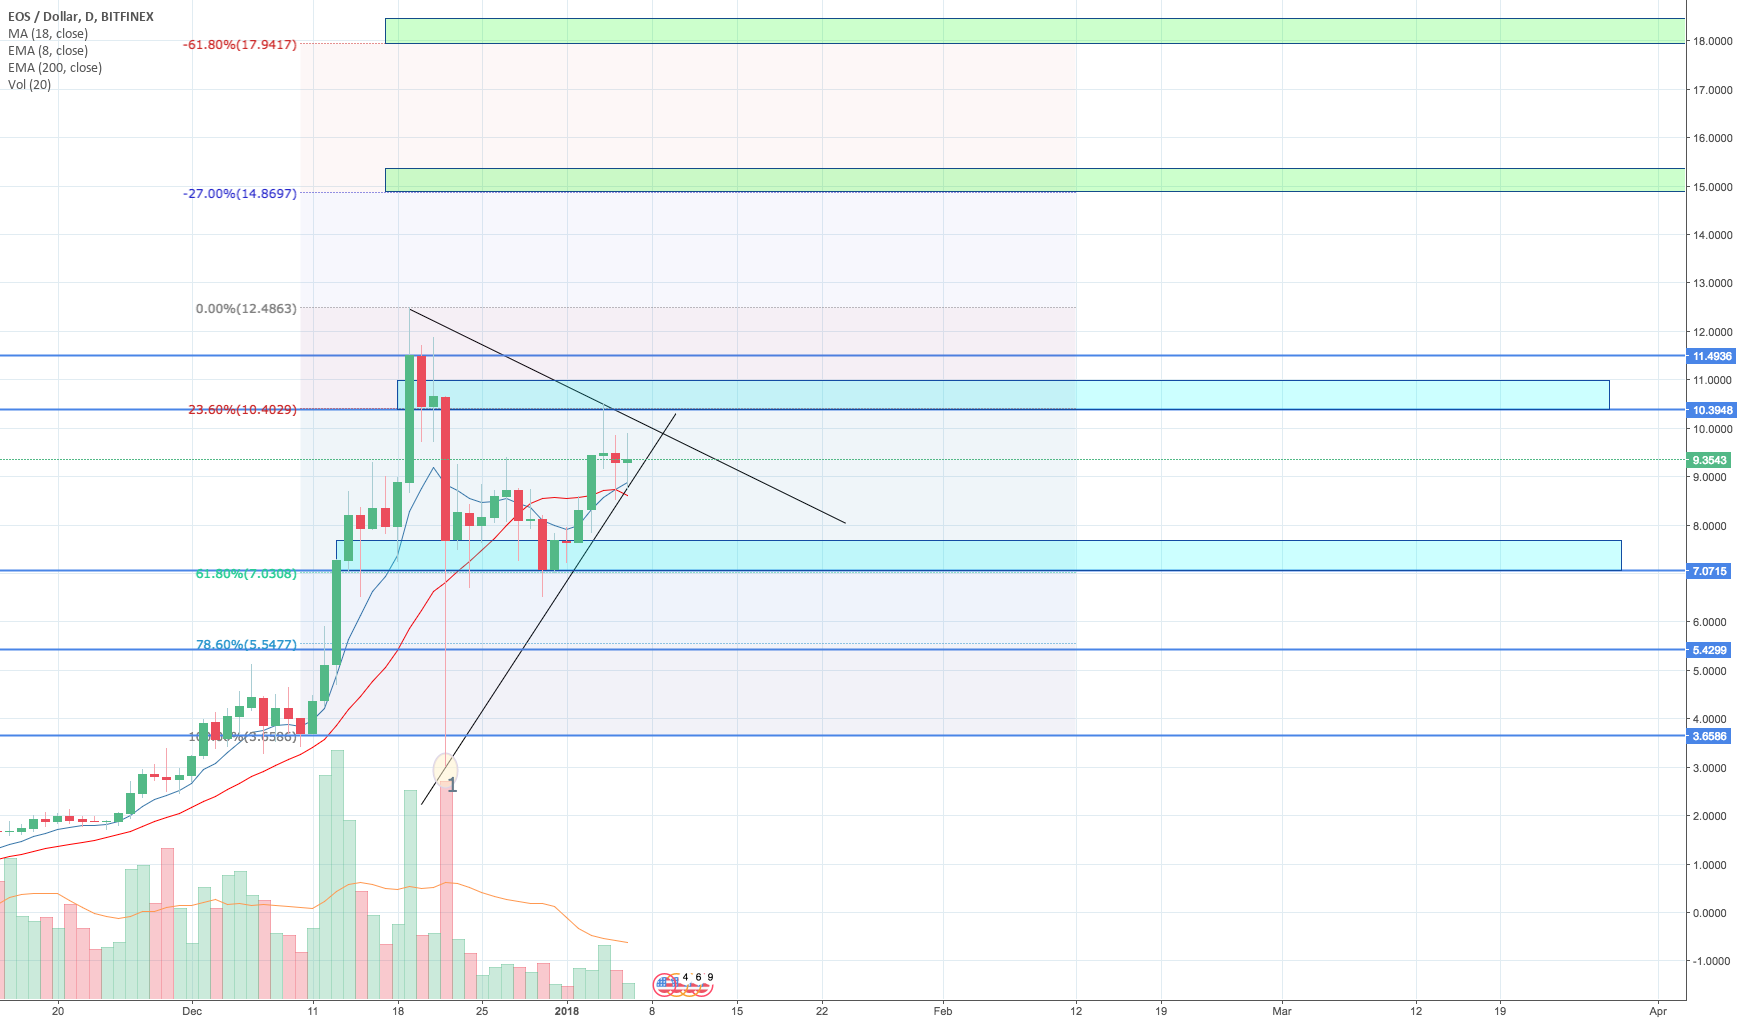 EOS/USD Bouncing off support at $7. Target price $14 & $18 [BUY]